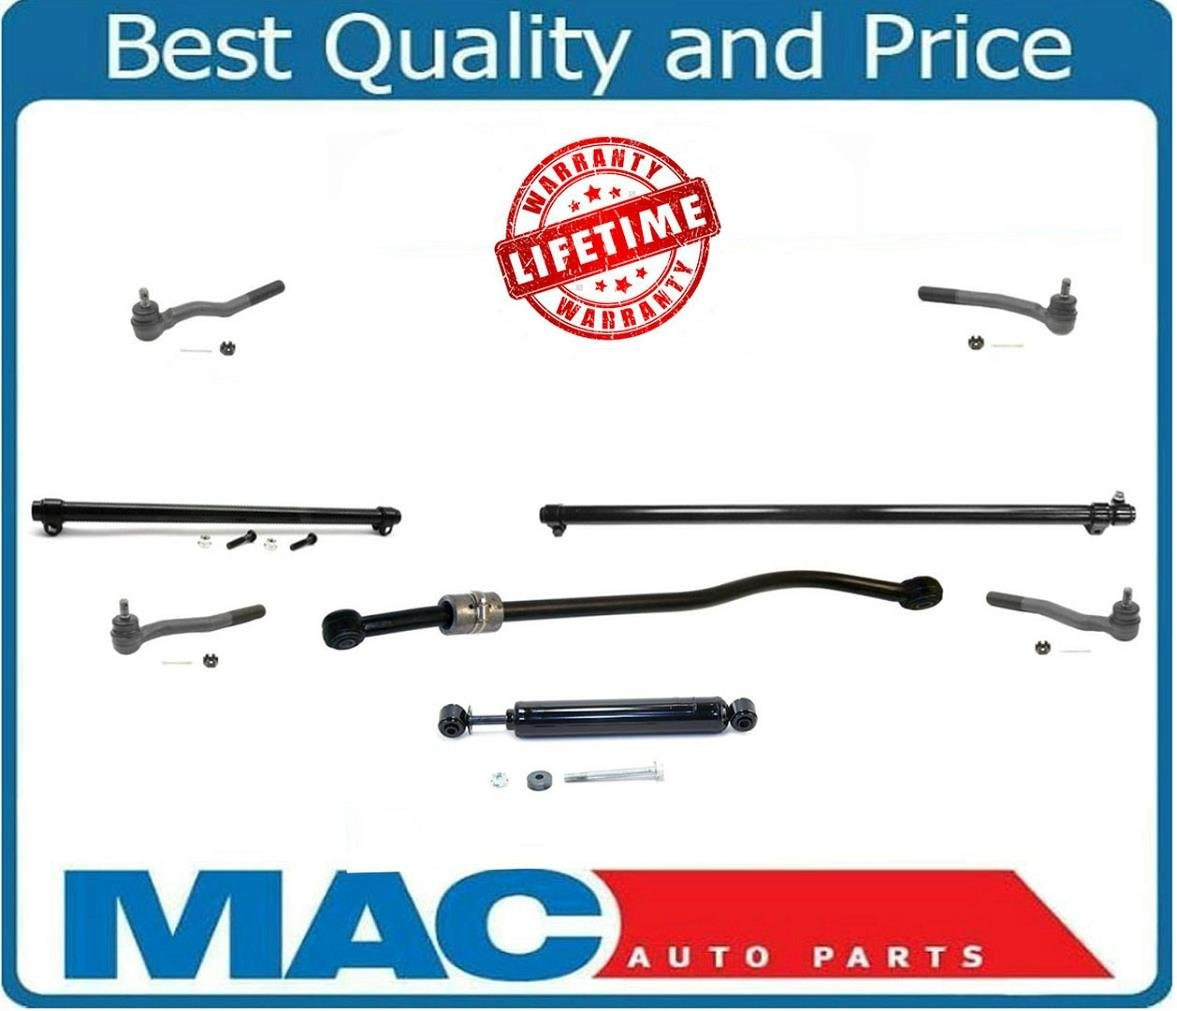 amazon com: mac auto parts 130451 99-04 jeep grand cherokee steering kit  tie rods sleeves and steering stabilizer: automotive